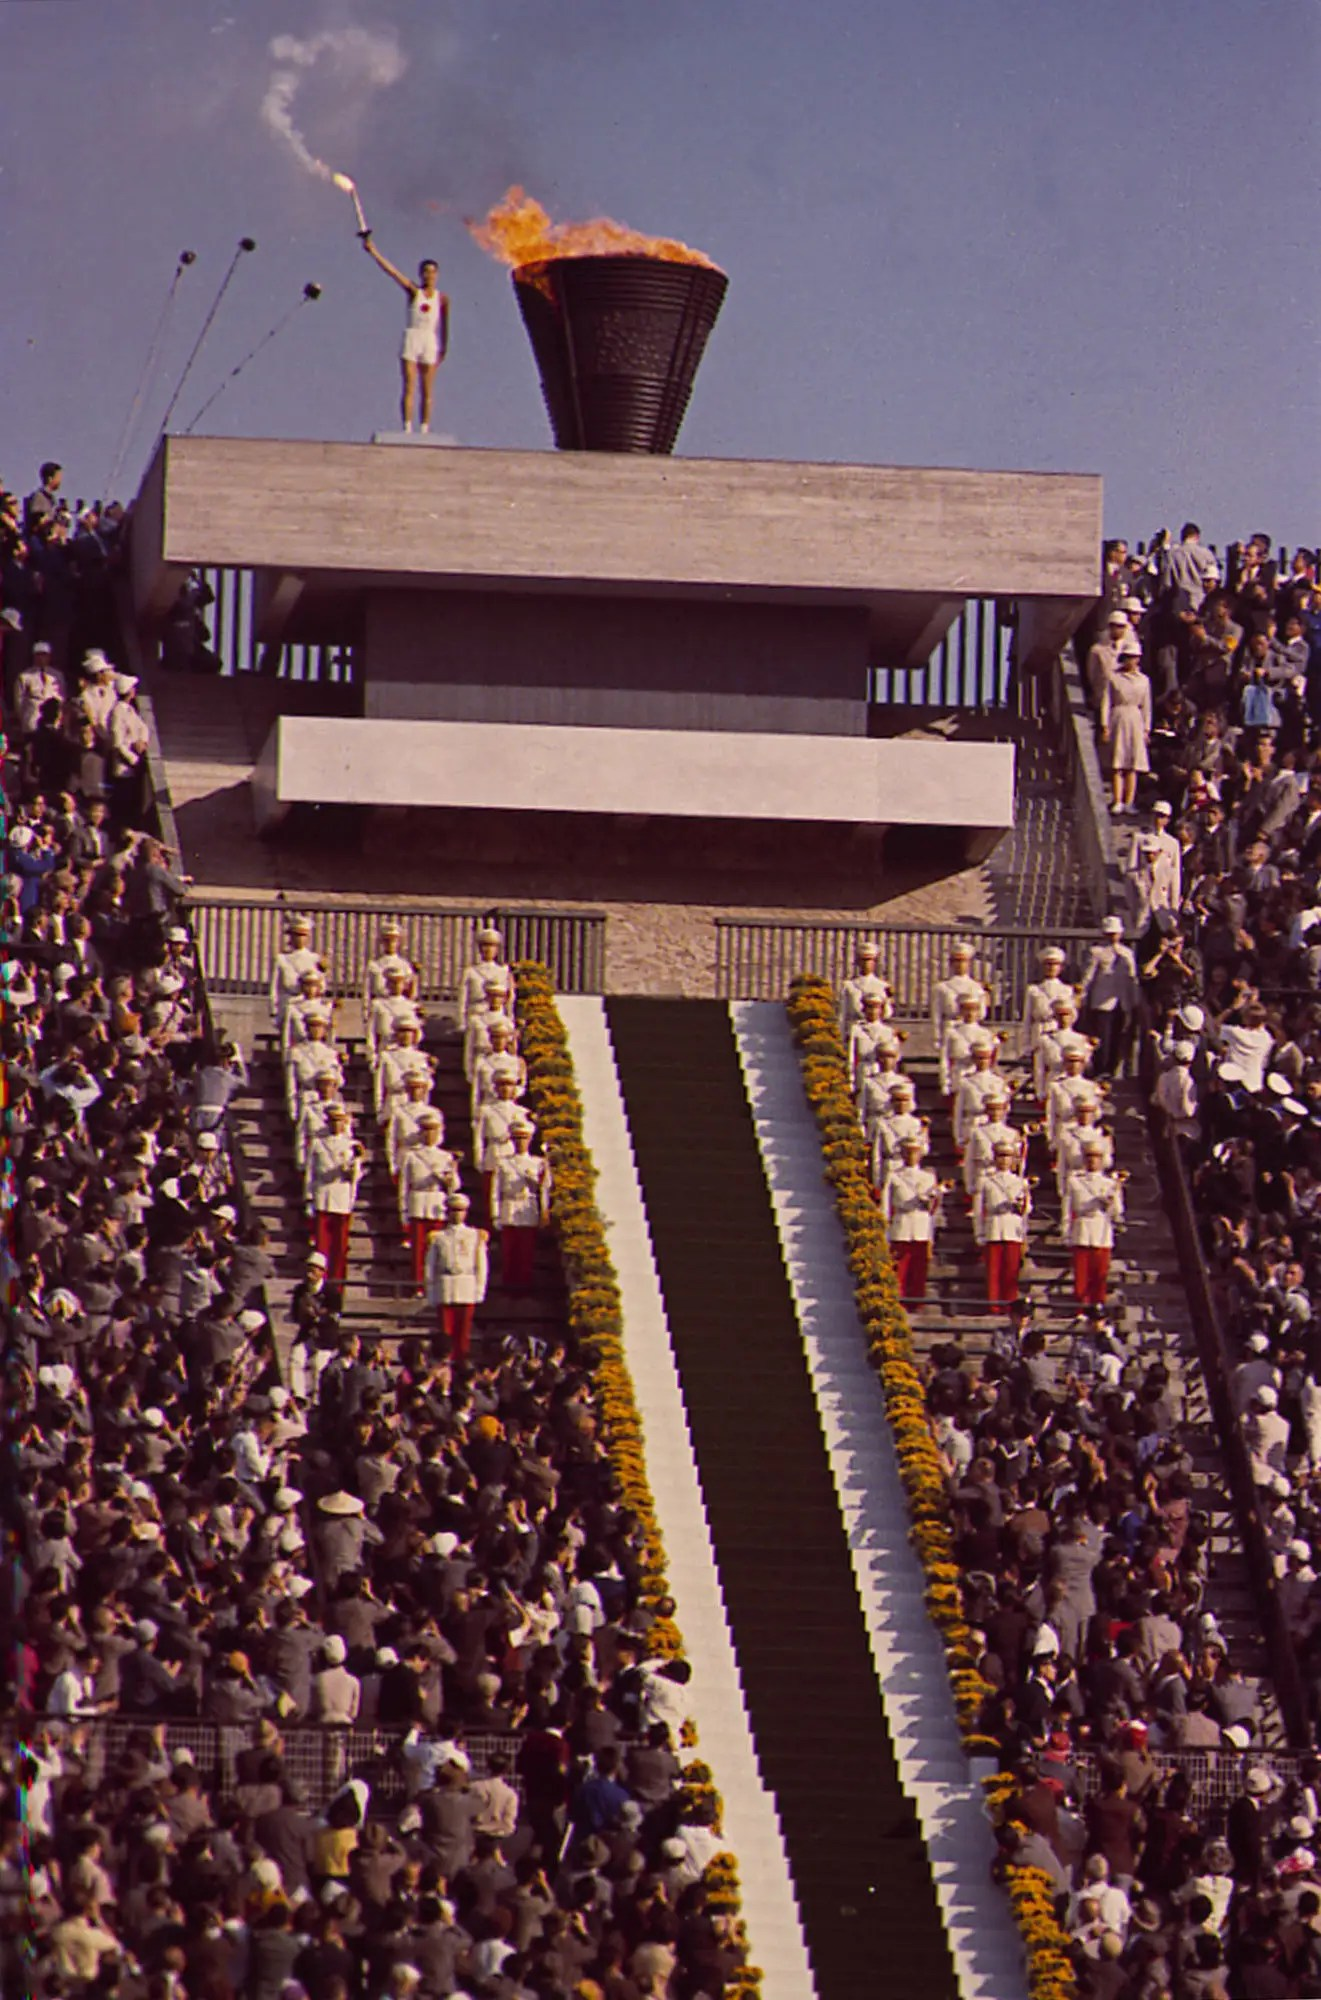 Tokyo, 1964: The Tokyo Olympics were the first to be held in Asia, the first to feature colour broadcasting, and also the first to ban South Africa from participating due to its apartheid laws.